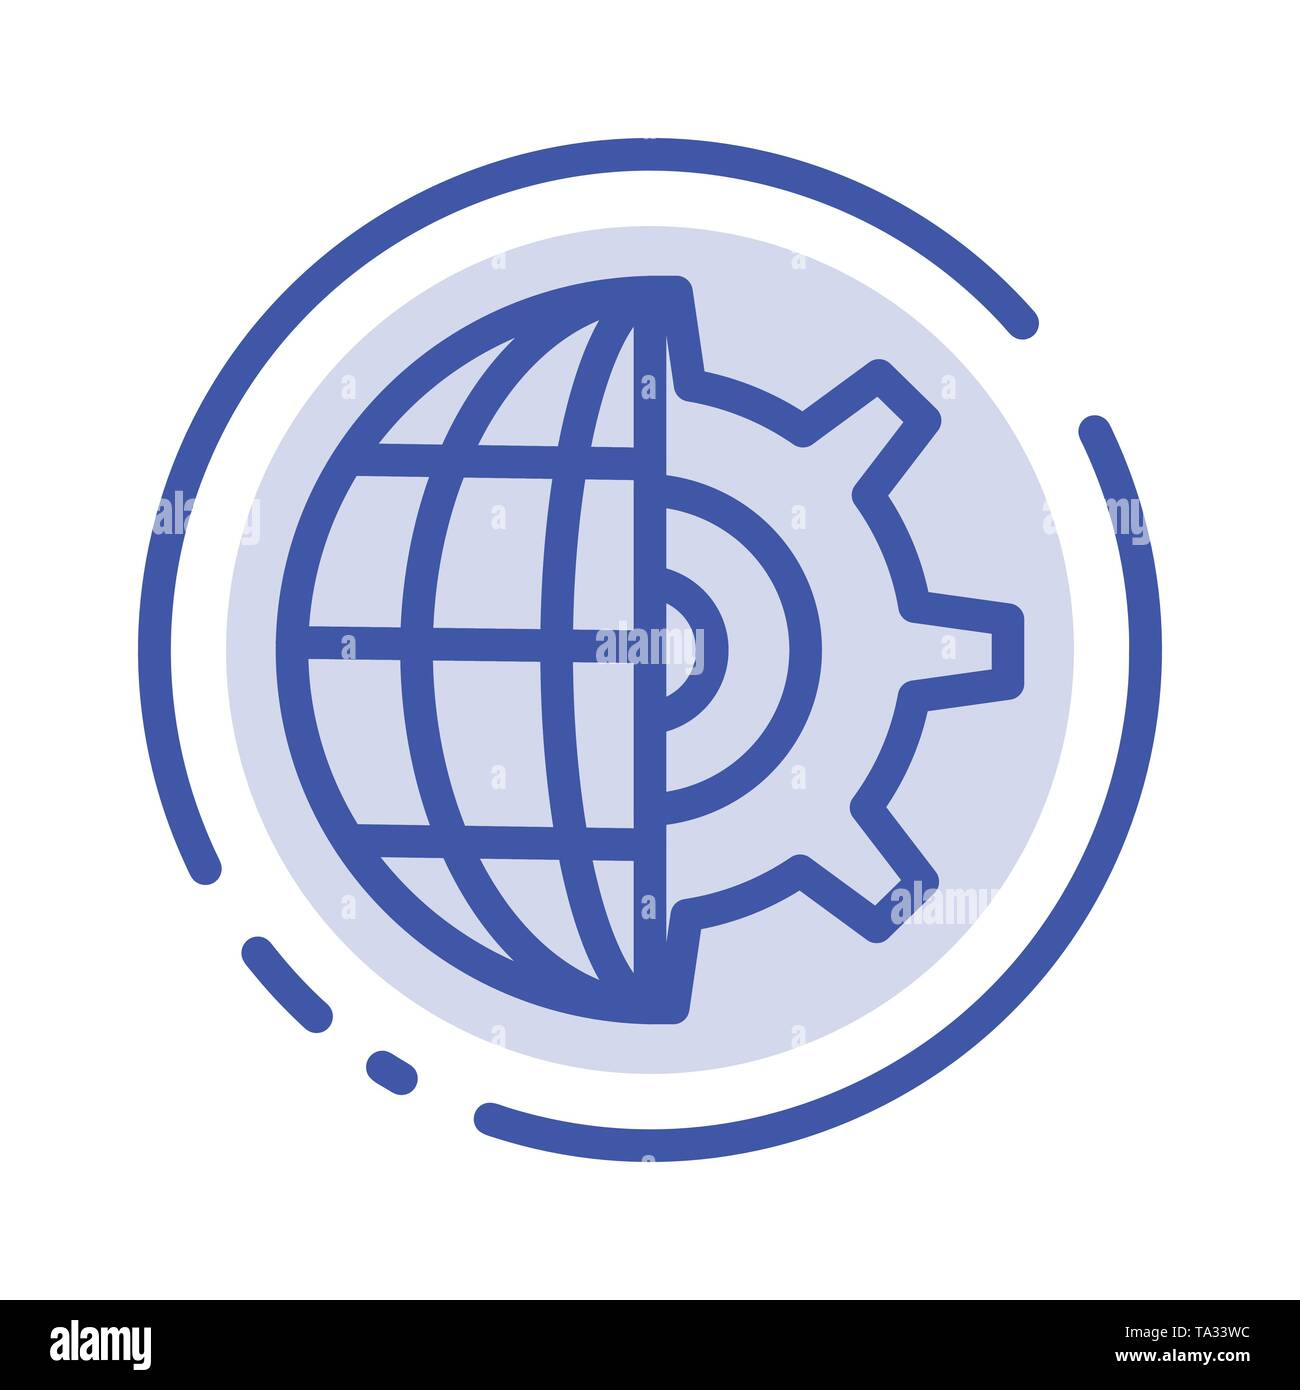 Gear, Globe, Setting, Business Blue Dotted Line Line Icon - Stock Image